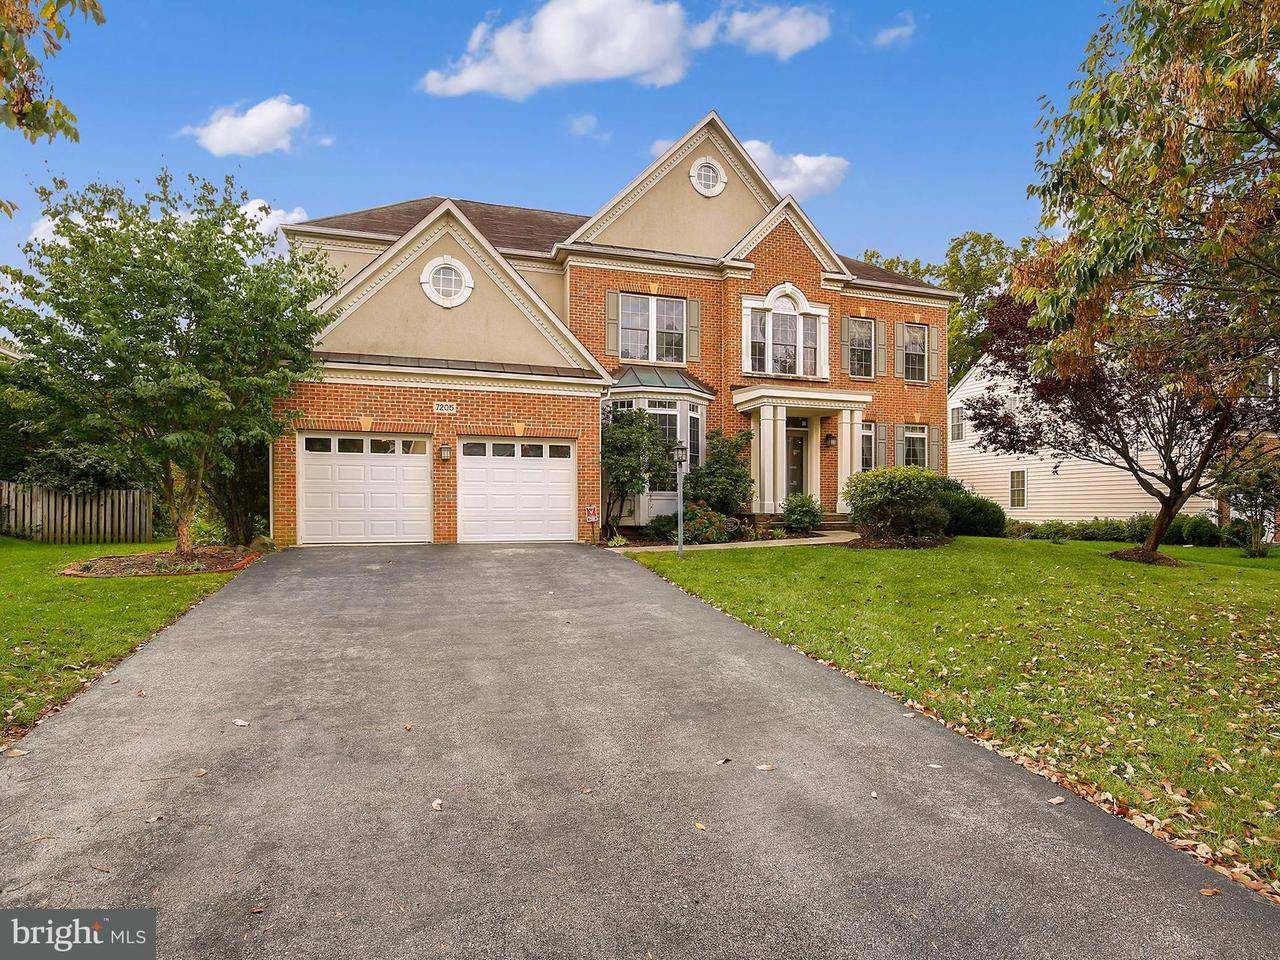 Single Family Home for Sale at 7205 Hatterby Court 7205 Hatterby Court Elkridge, Maryland 21075 United States